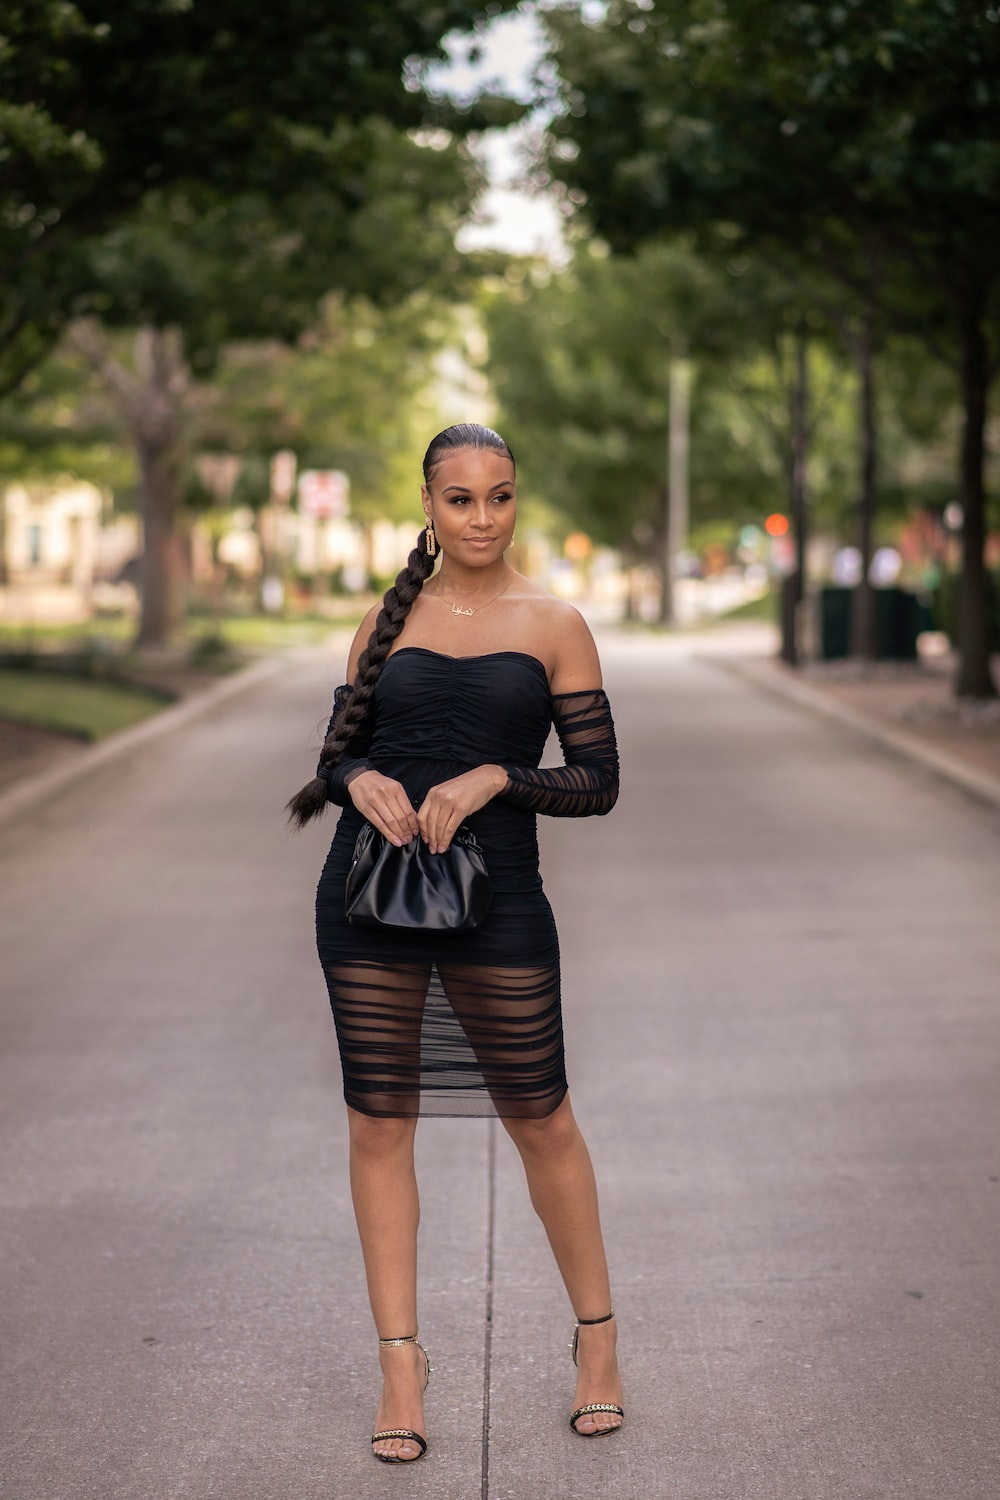 woman in black tank top and black skirt standing on road during daytime